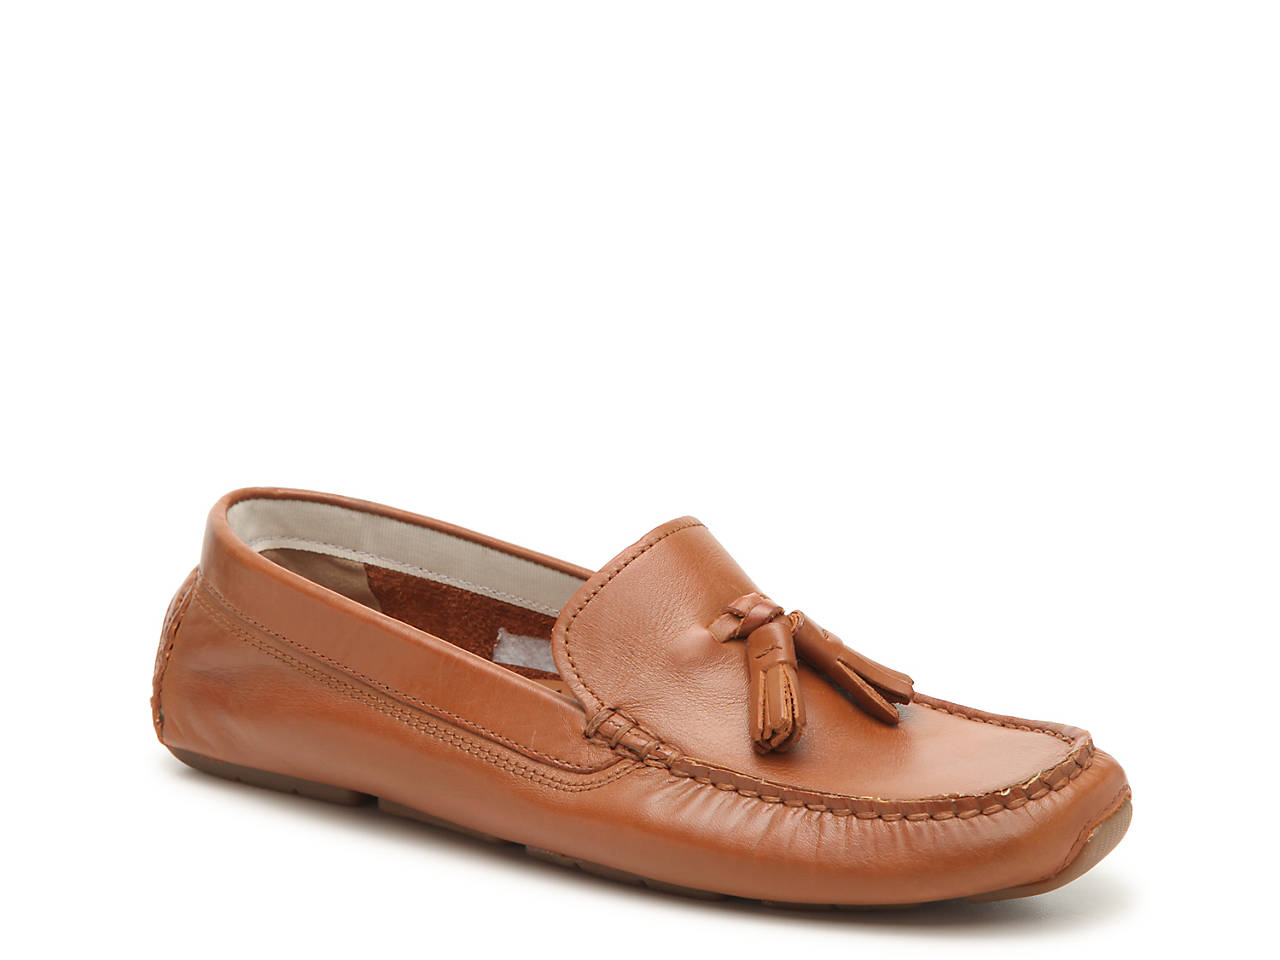 b31f92872f3 Cole Haan Rodeo Loafer Women s Shoes